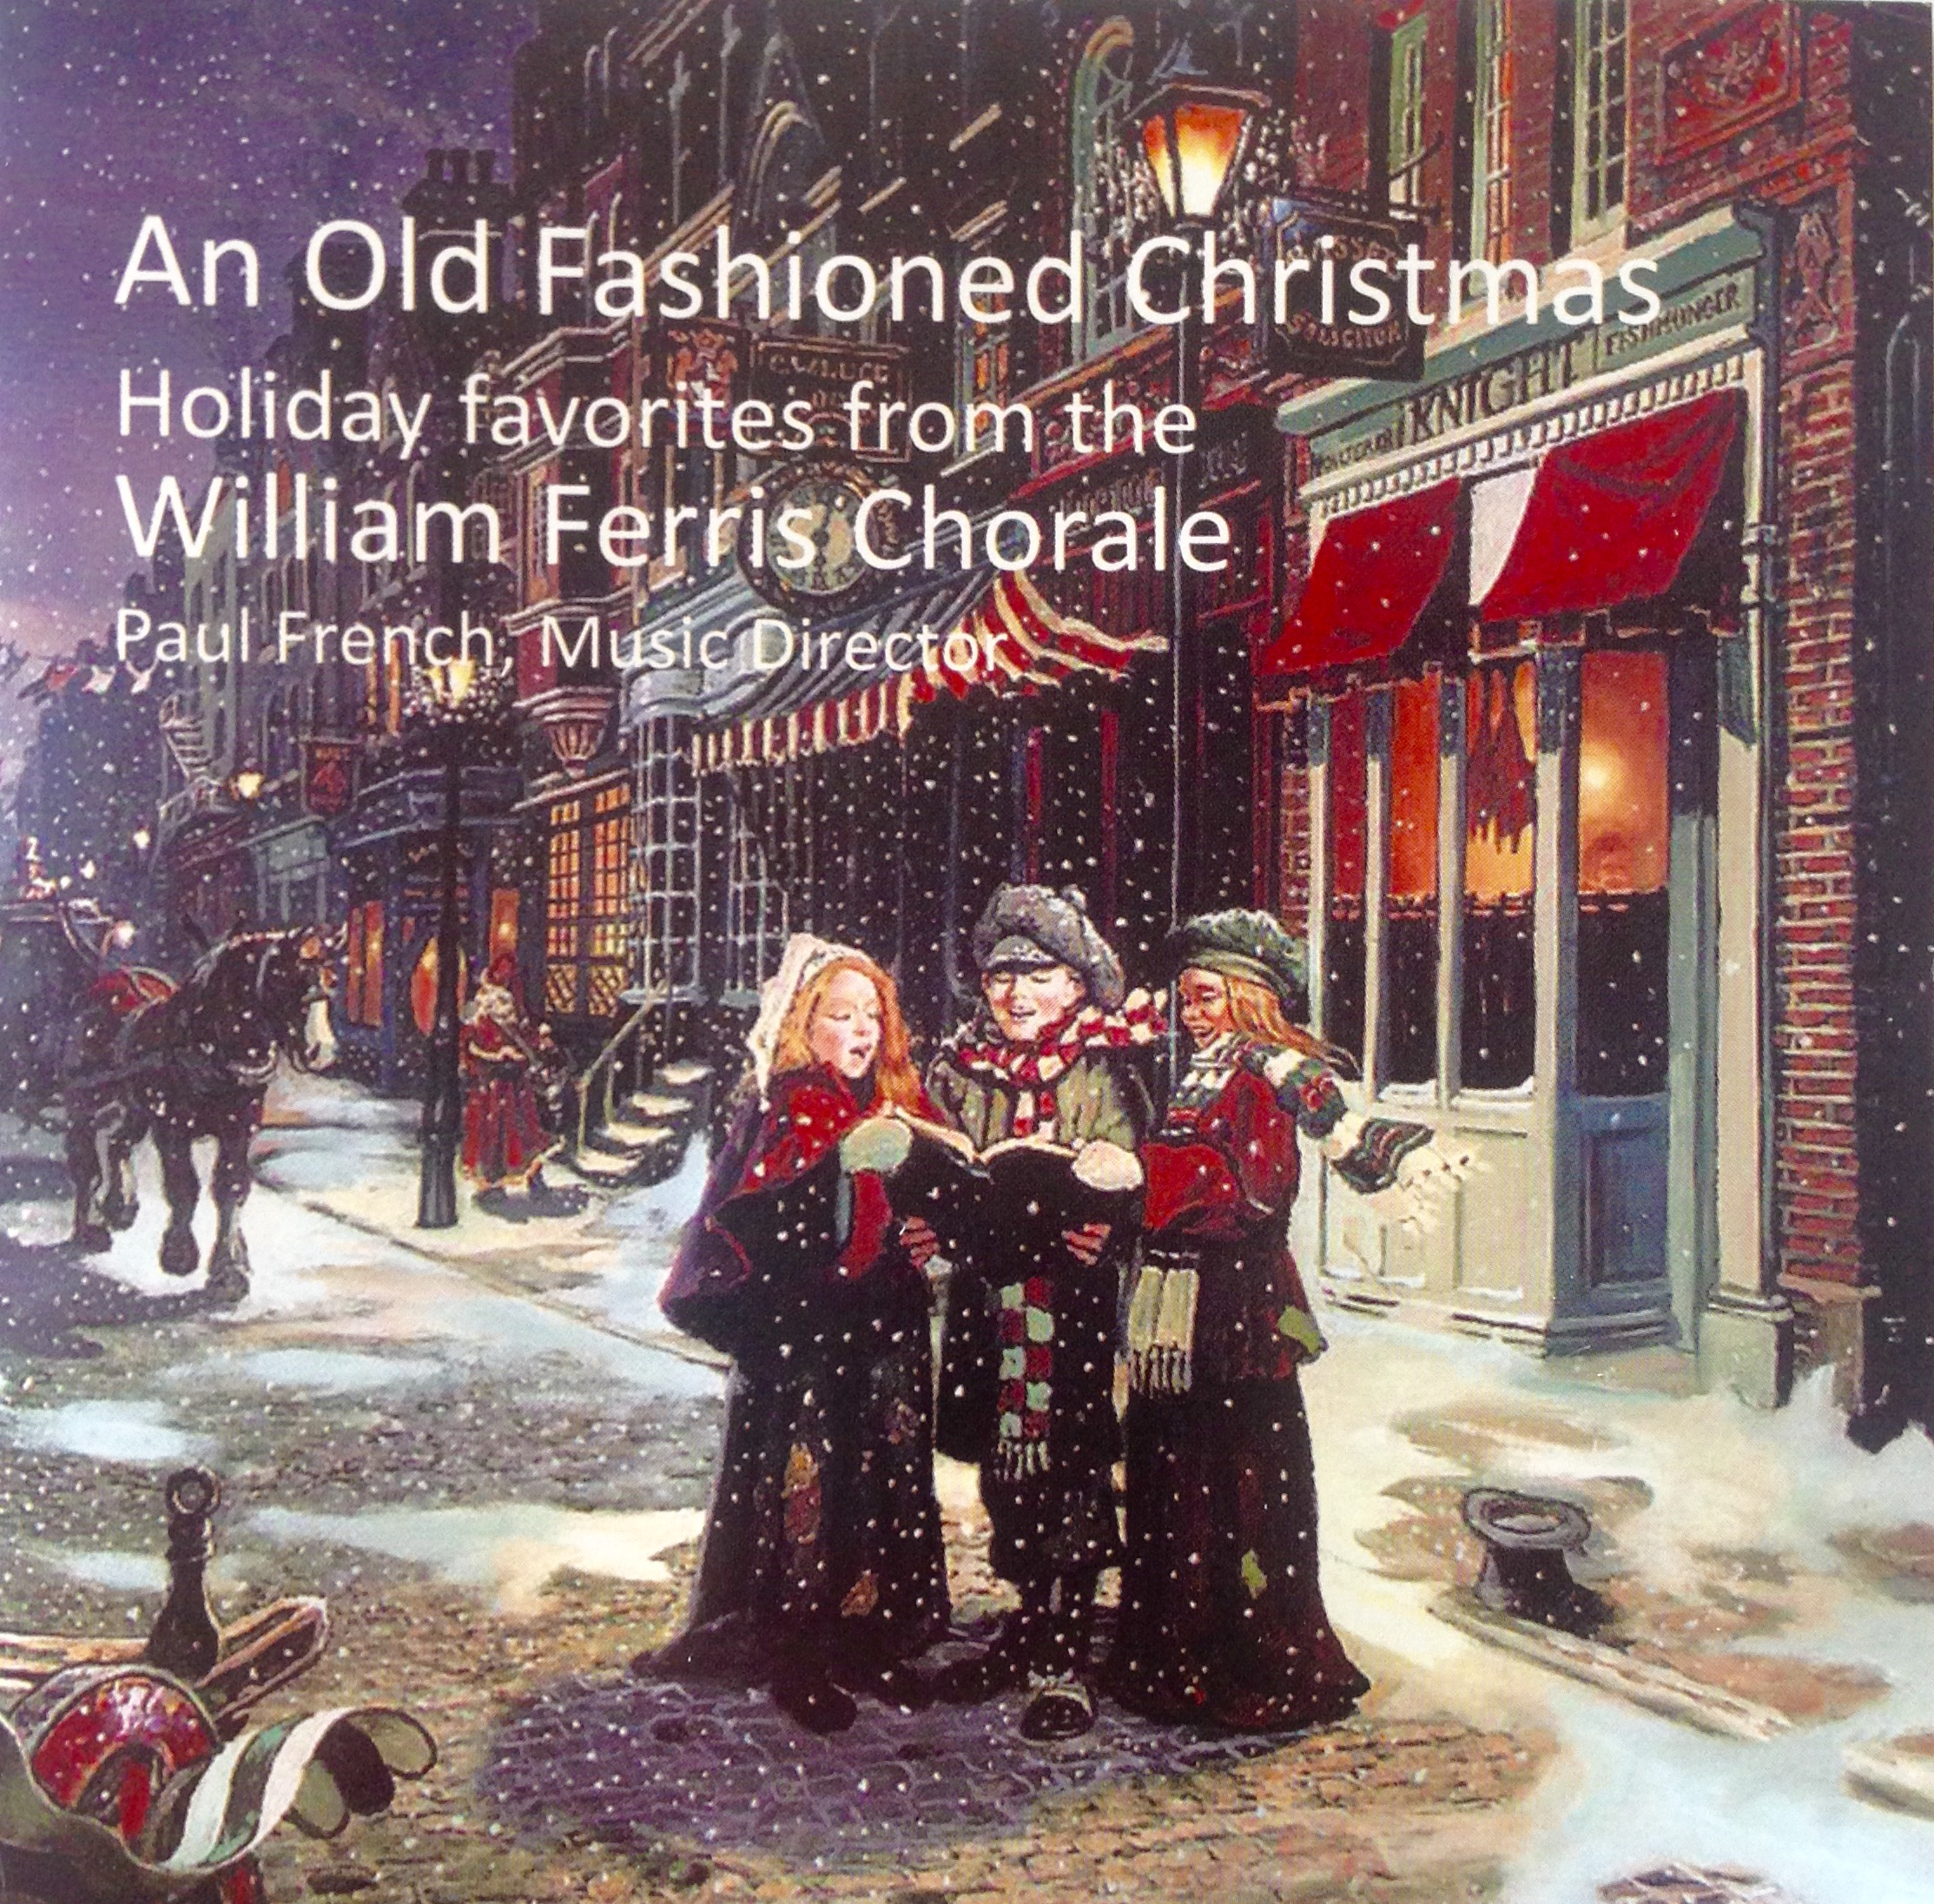 Old Fashioned Christmas Pictures.An Old Fashioned Christmas William Ferris Chorale